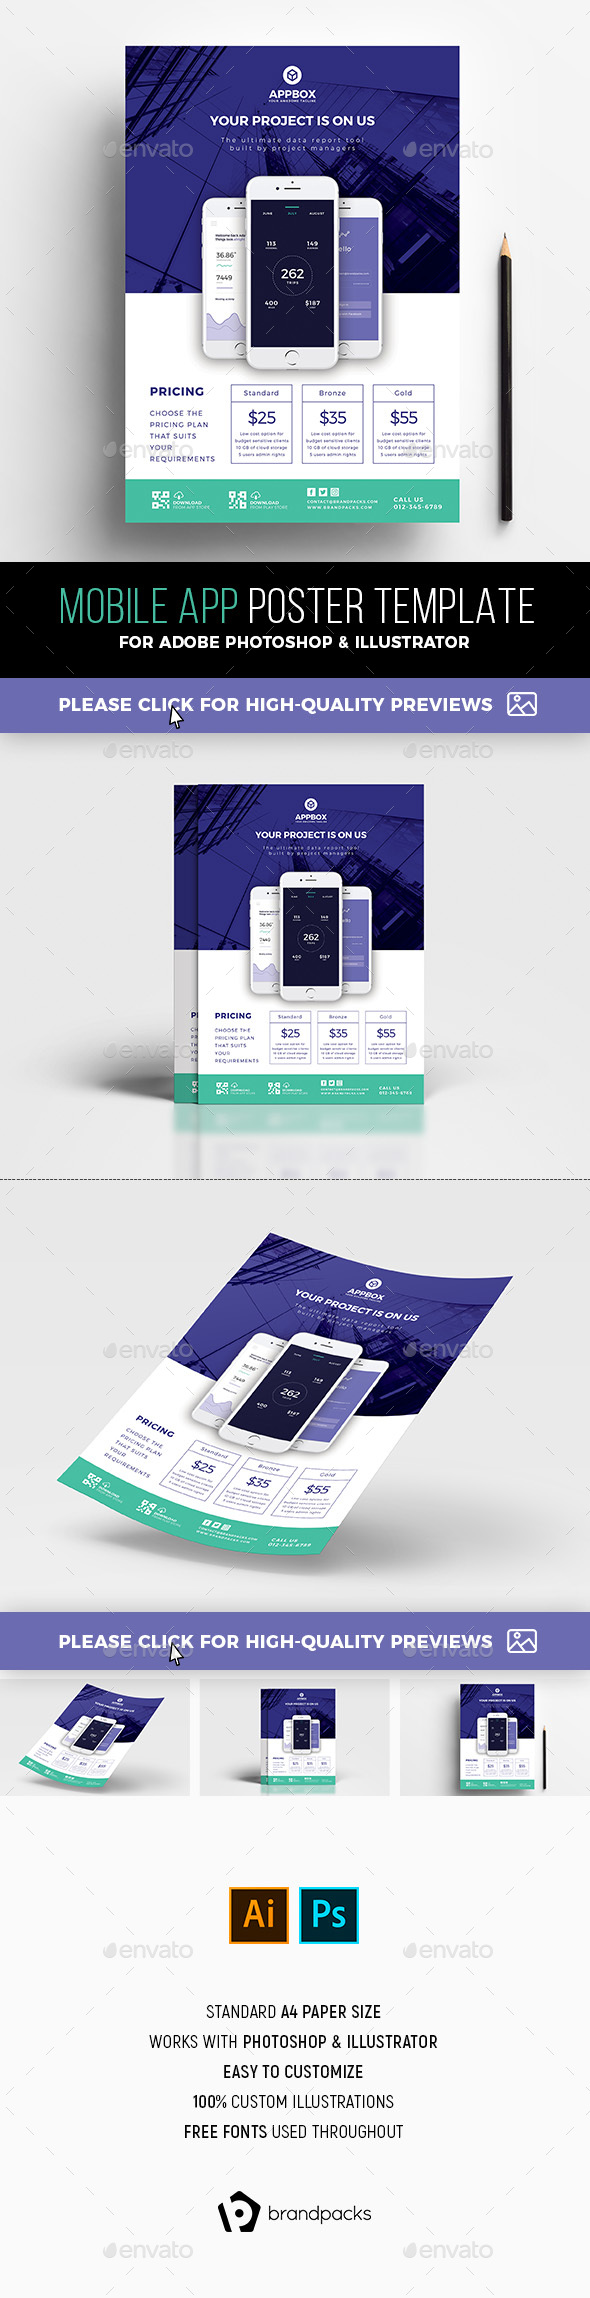 A4 Mobile App Poster Template v2 - Corporate Flyers